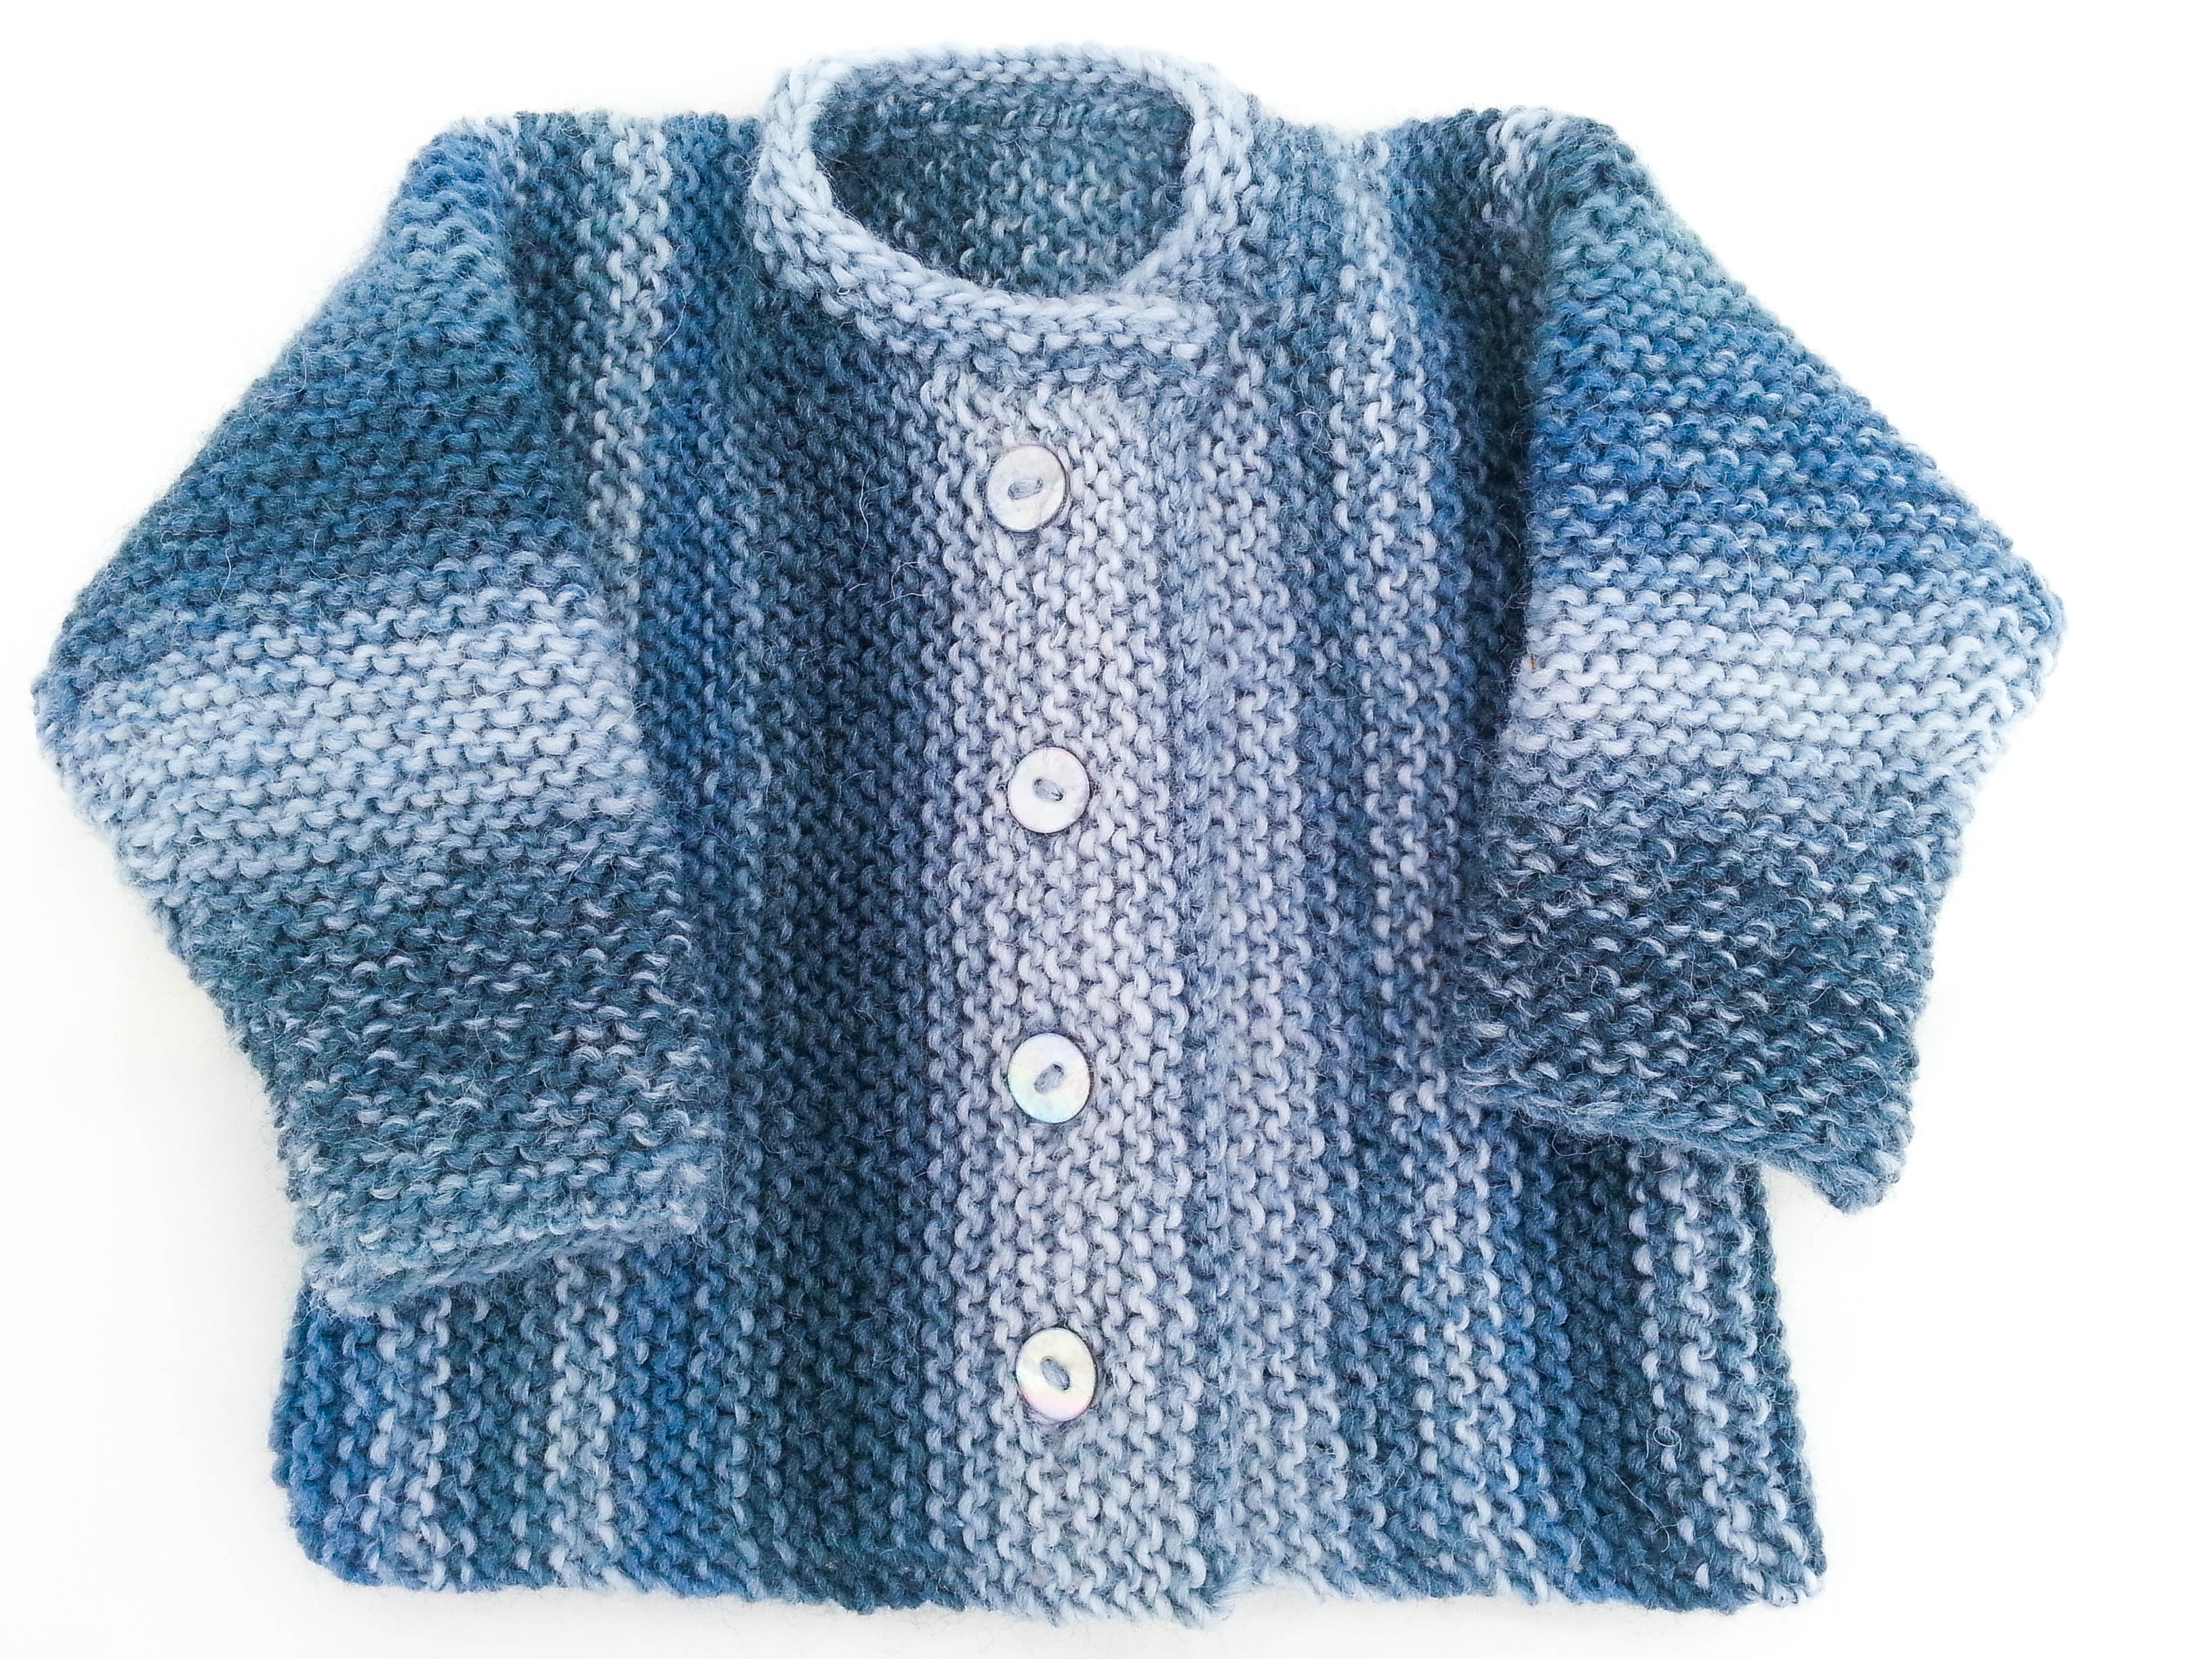 Cardigan Sweater Knitting Pattern Knitting Pattern Garter Stitch Ba Cardigan One Piece Ba Sweater 5 Sizes Easy Pattern Toddler Buttoned Sweater